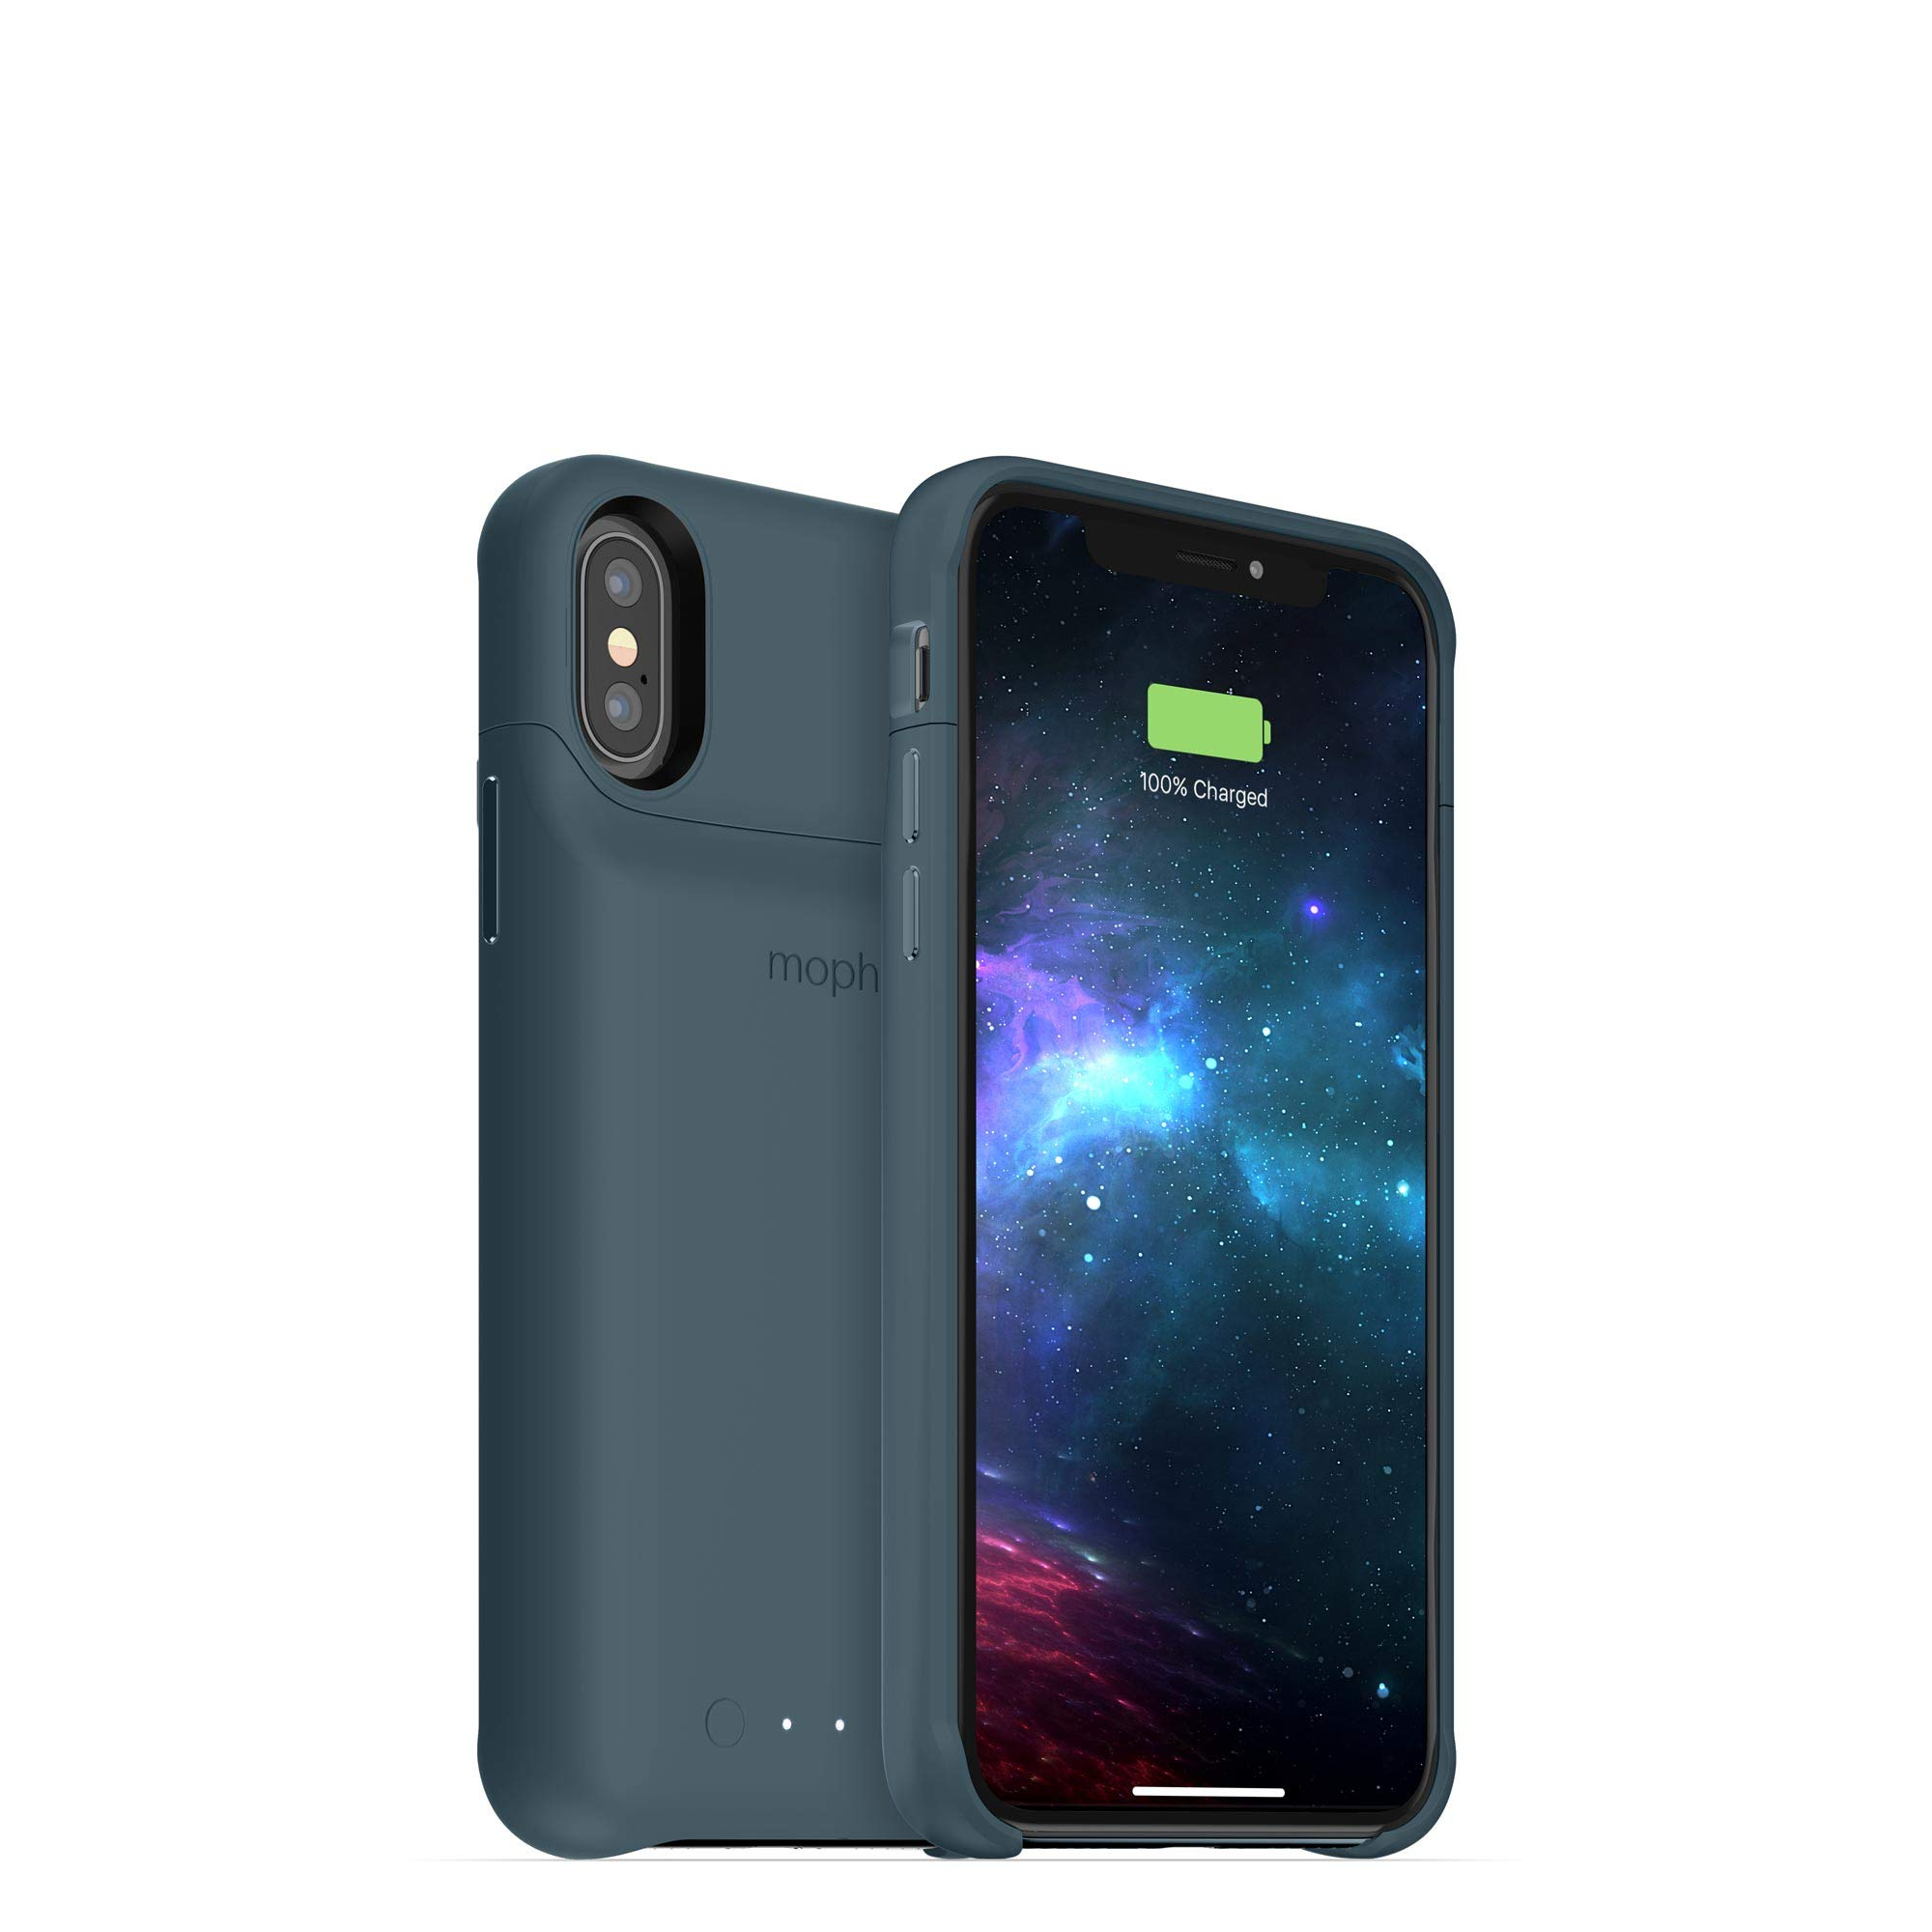 Mophie Juice Pack Access - Ultra-Slim Wireless Battery Case - Made for Apple iPhone Xs/iPhone X (2,000mAh) - Stone by Mophie